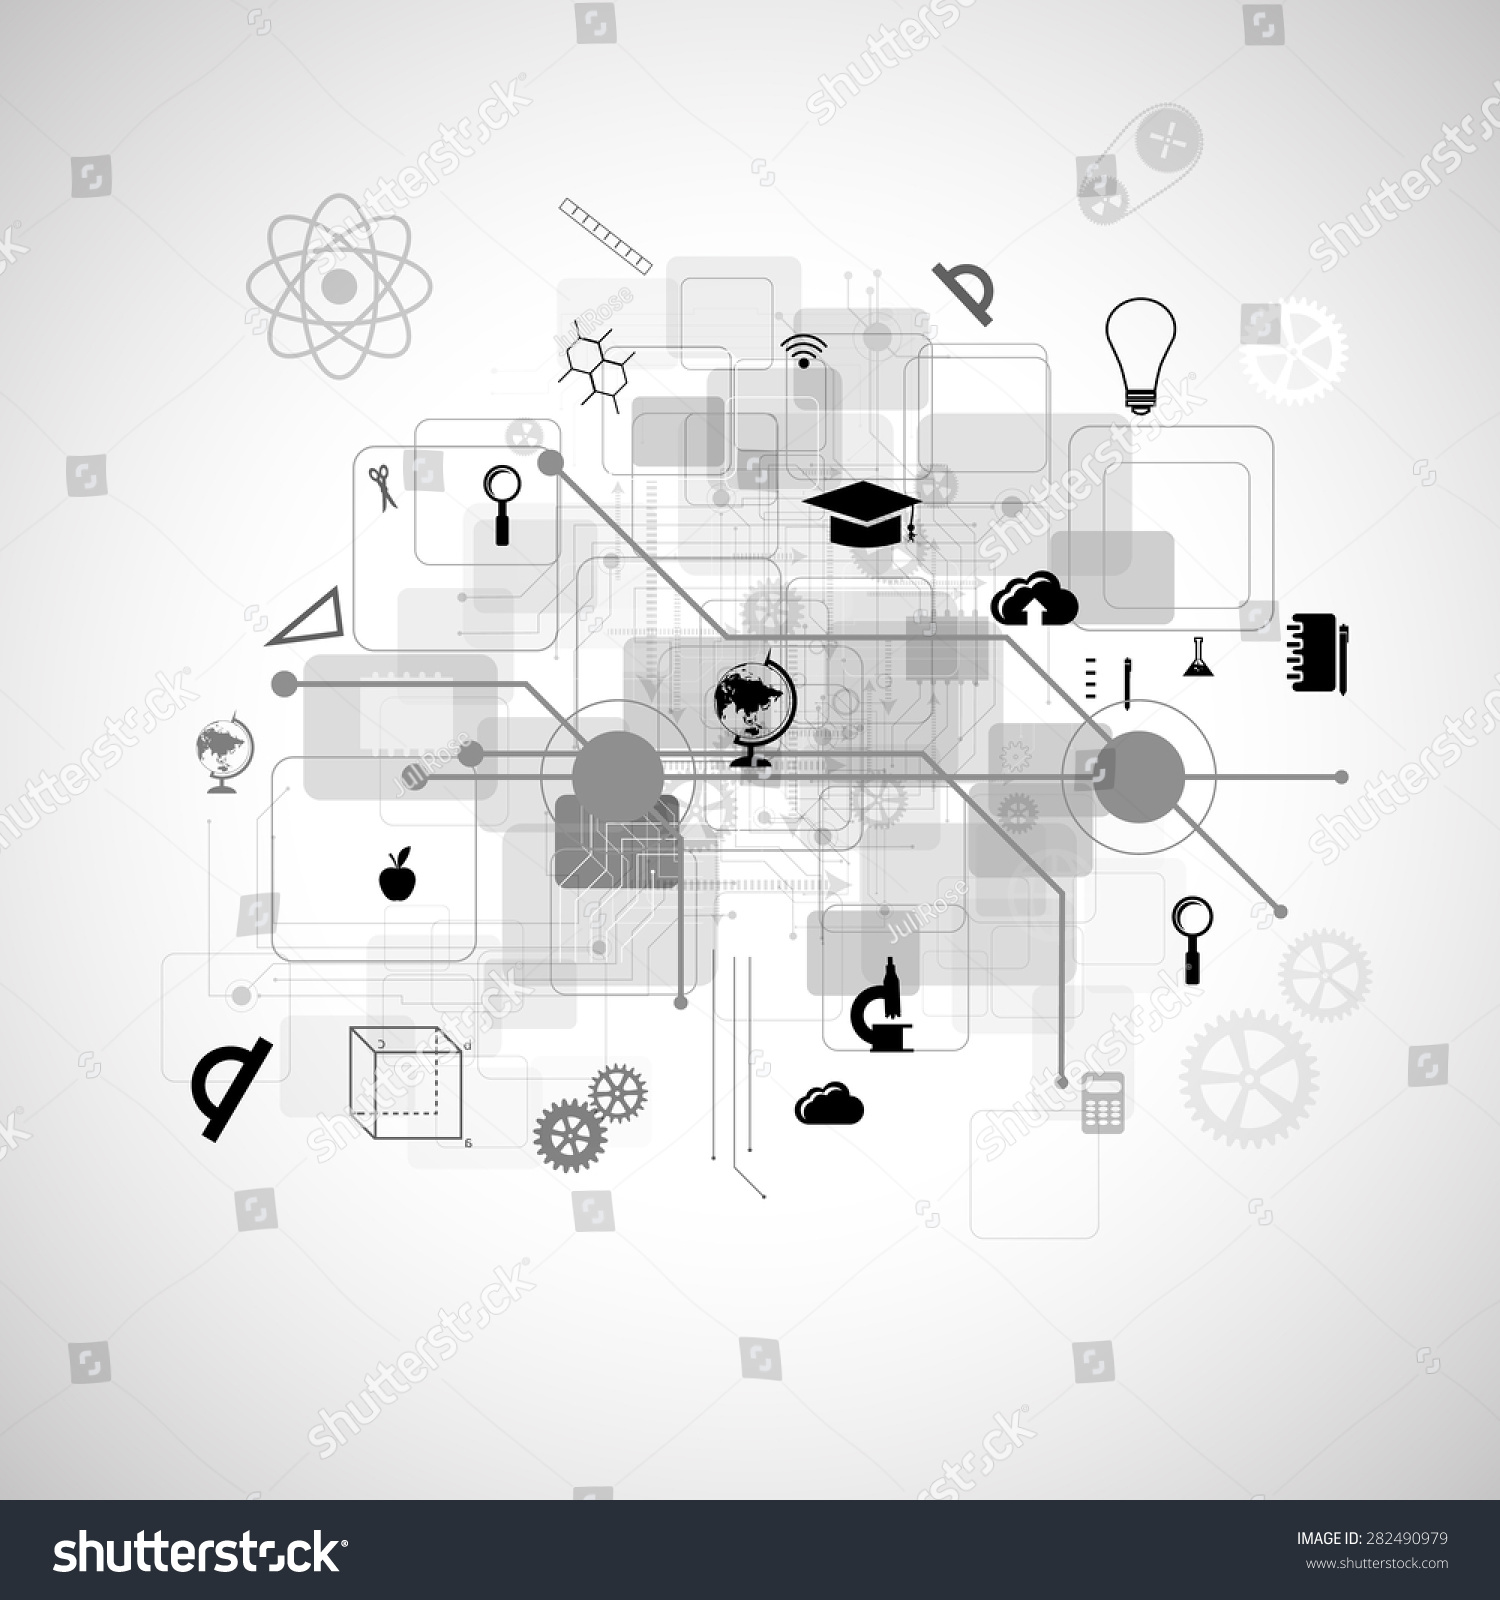 Tree diagram online dolgular education online learning tree knowledge icons stock illustration ccuart Choice Image